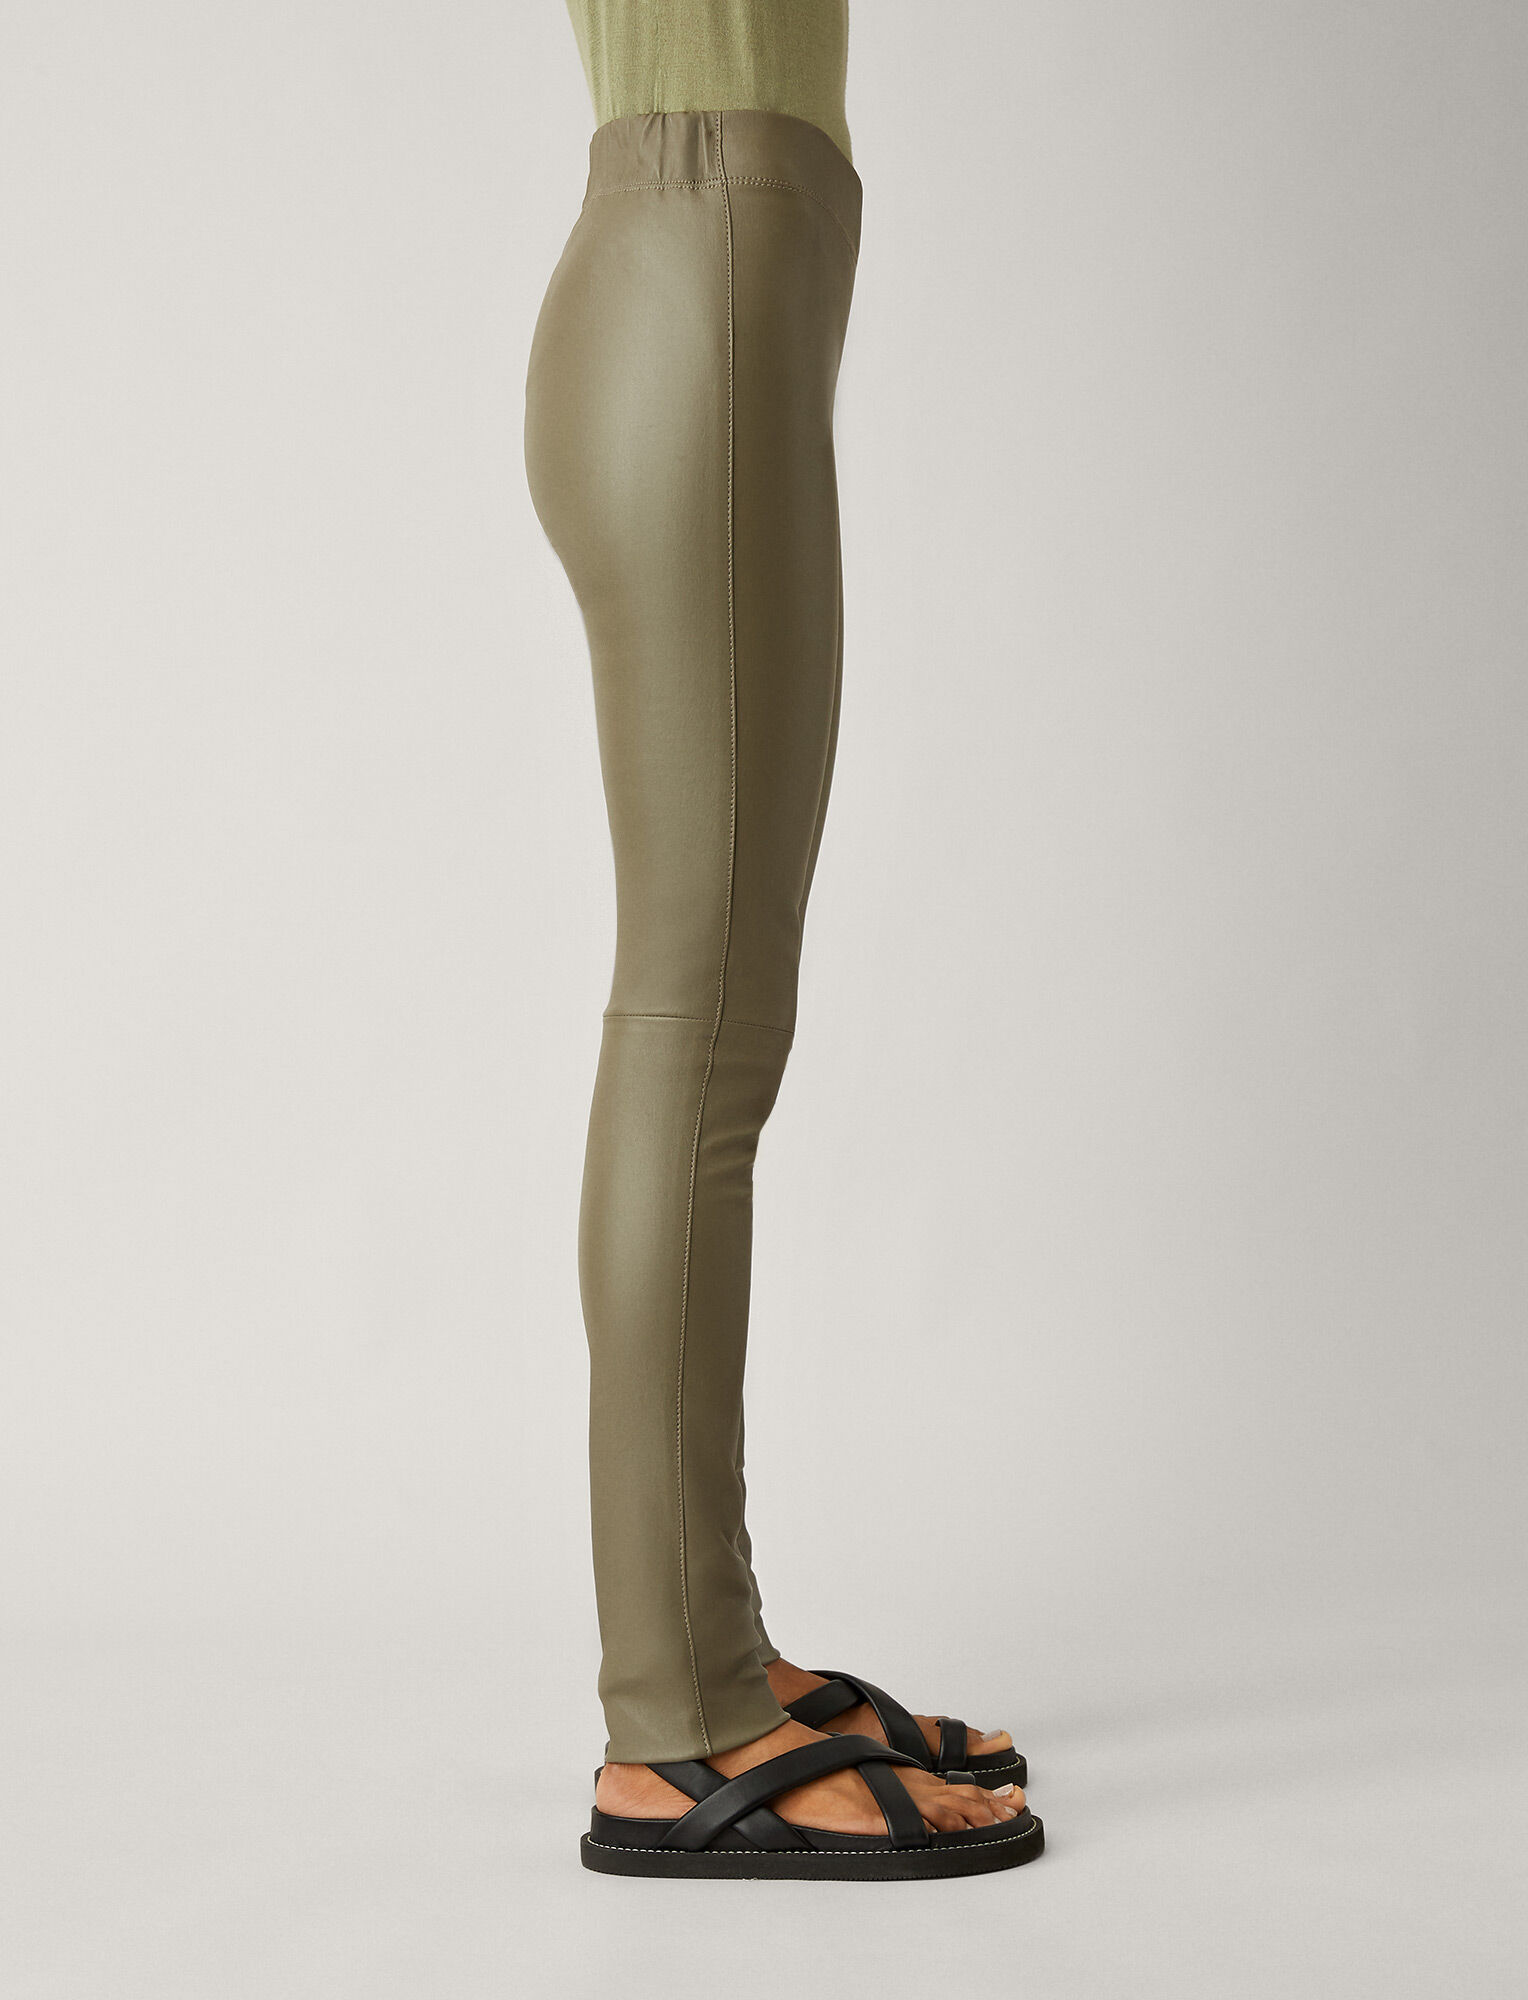 Joseph, Stretch Leather Leggings, in OLIVE